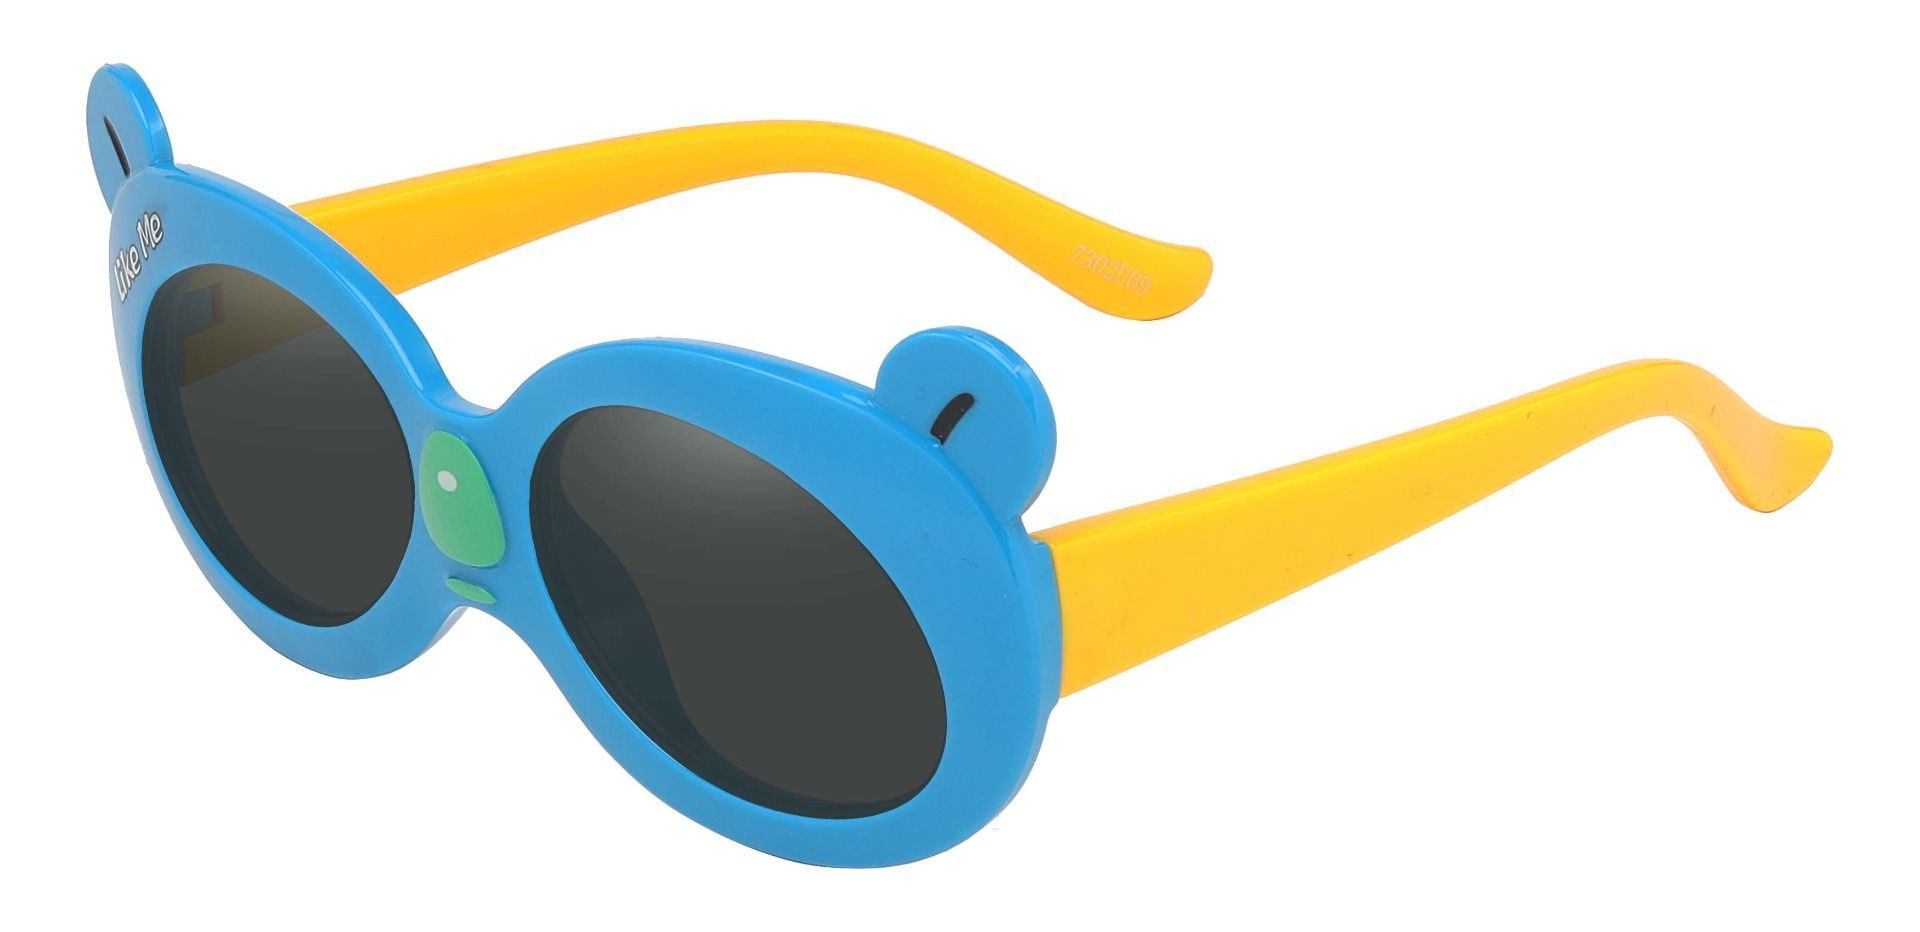 Tito Oval Single Vision Sunglasses - Blue Frame With Gray Lenses